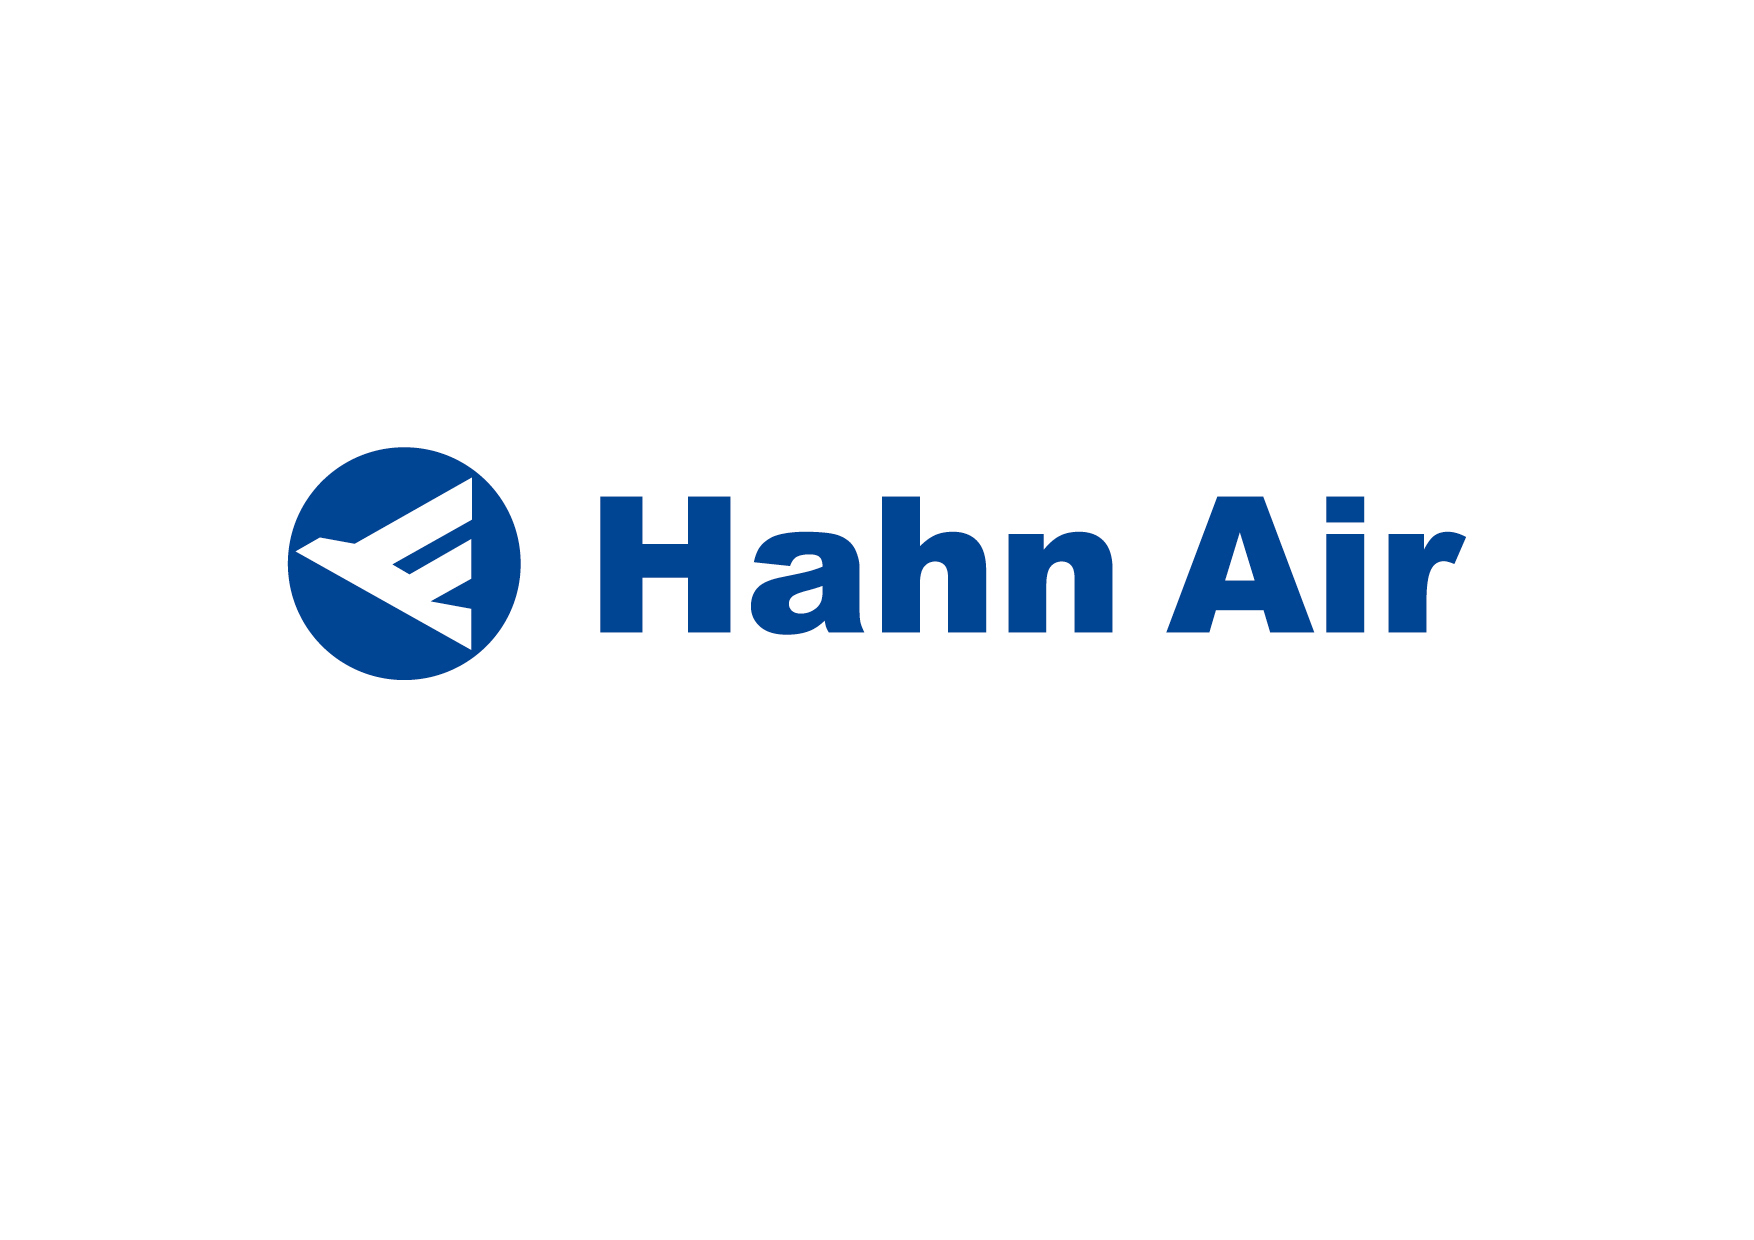 Hahn Air Logo Wallpaper